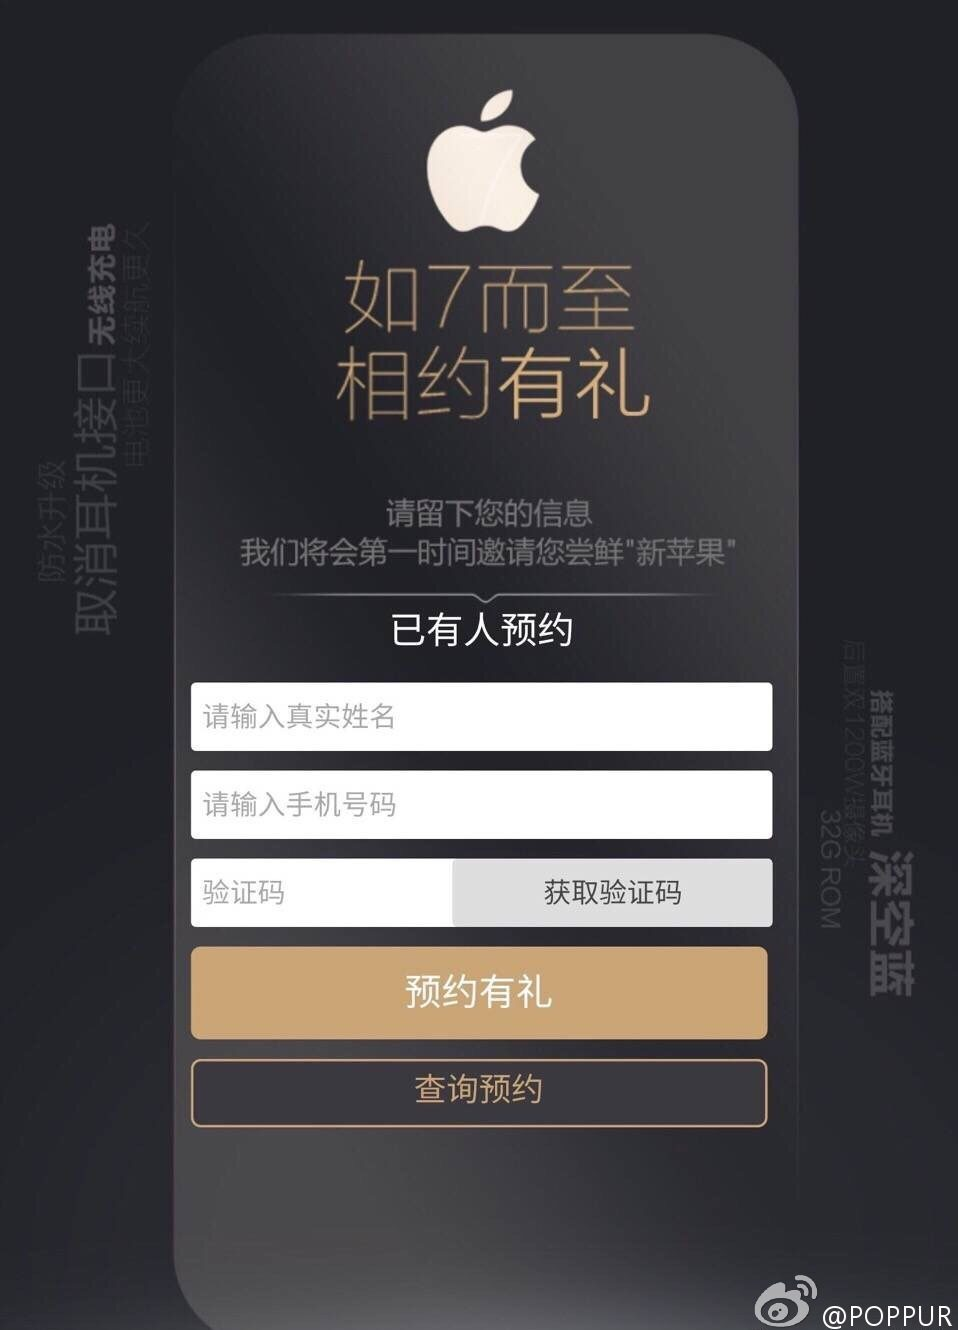 China Mobile iPhone 7 Registrations